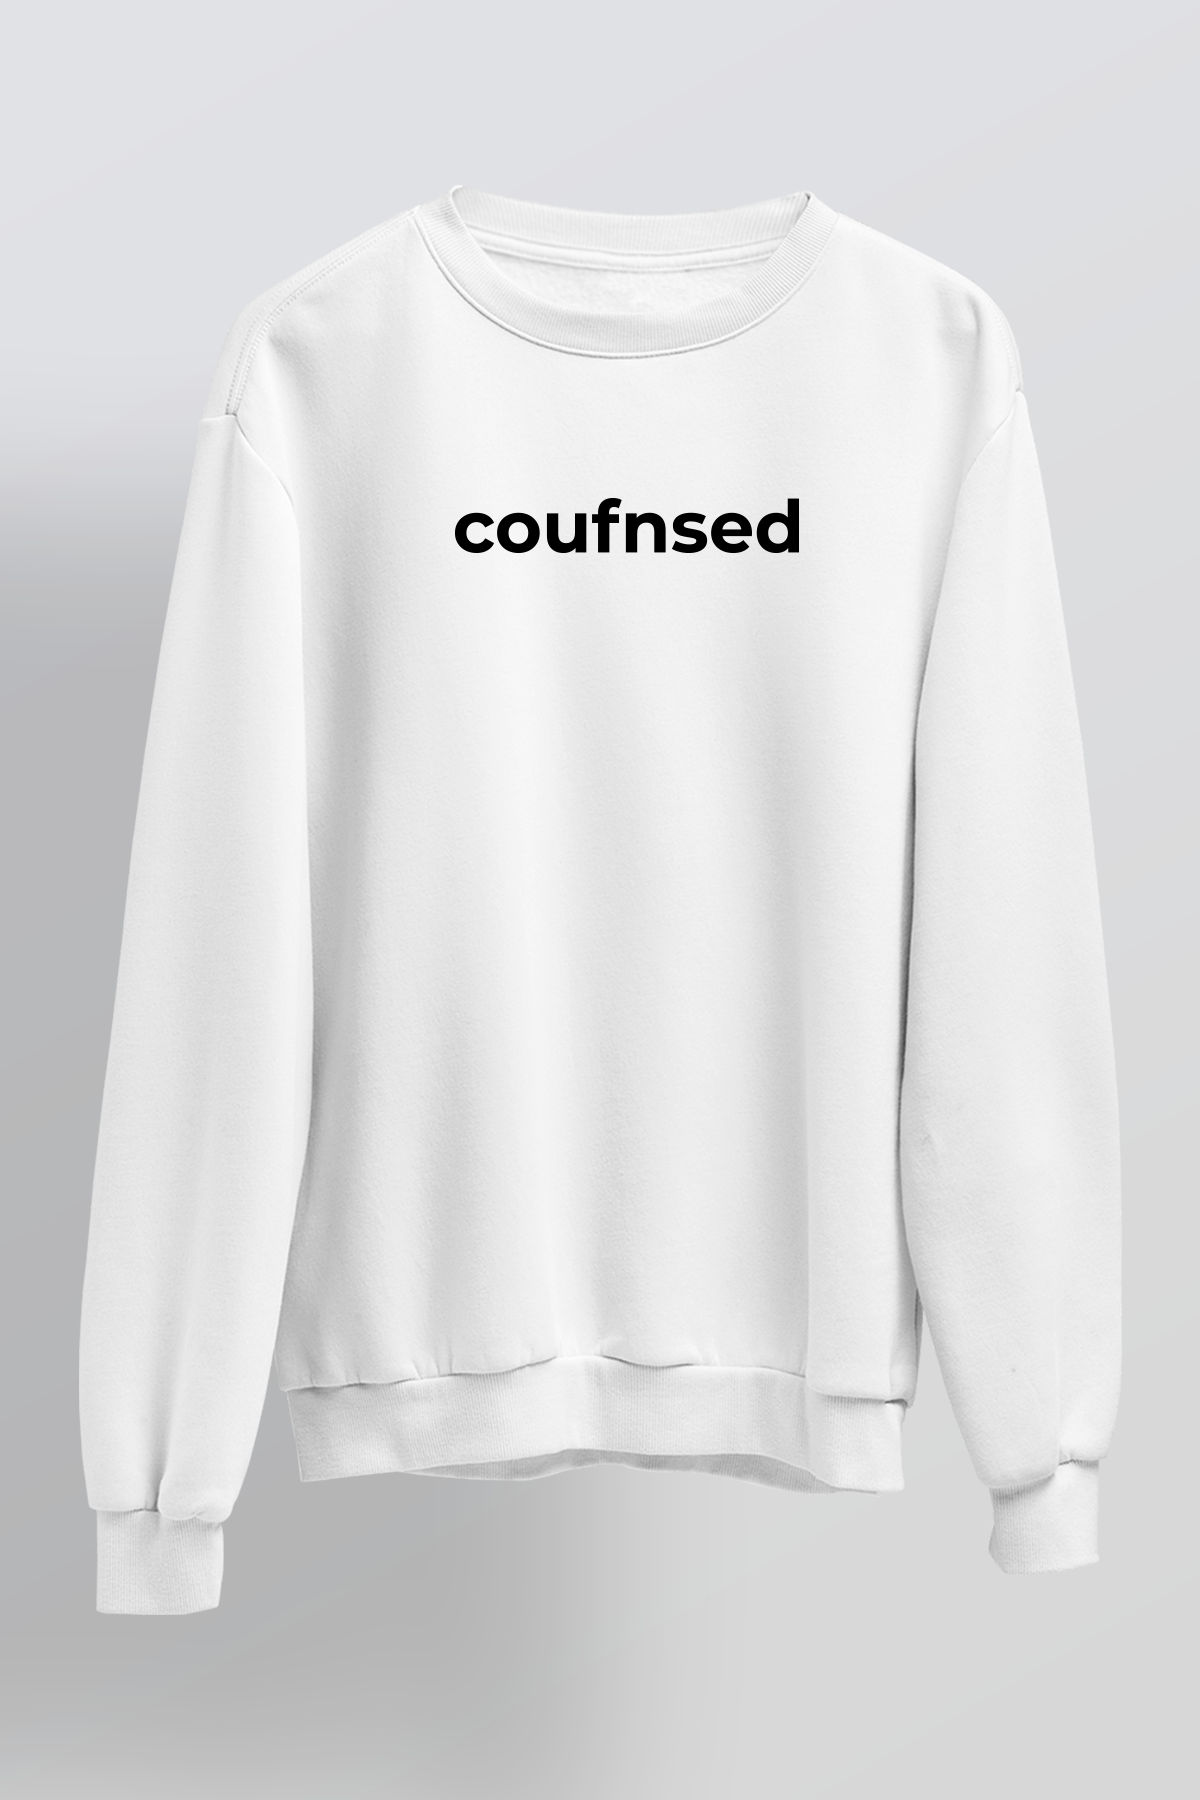 COUFNSED - Sweatshirt